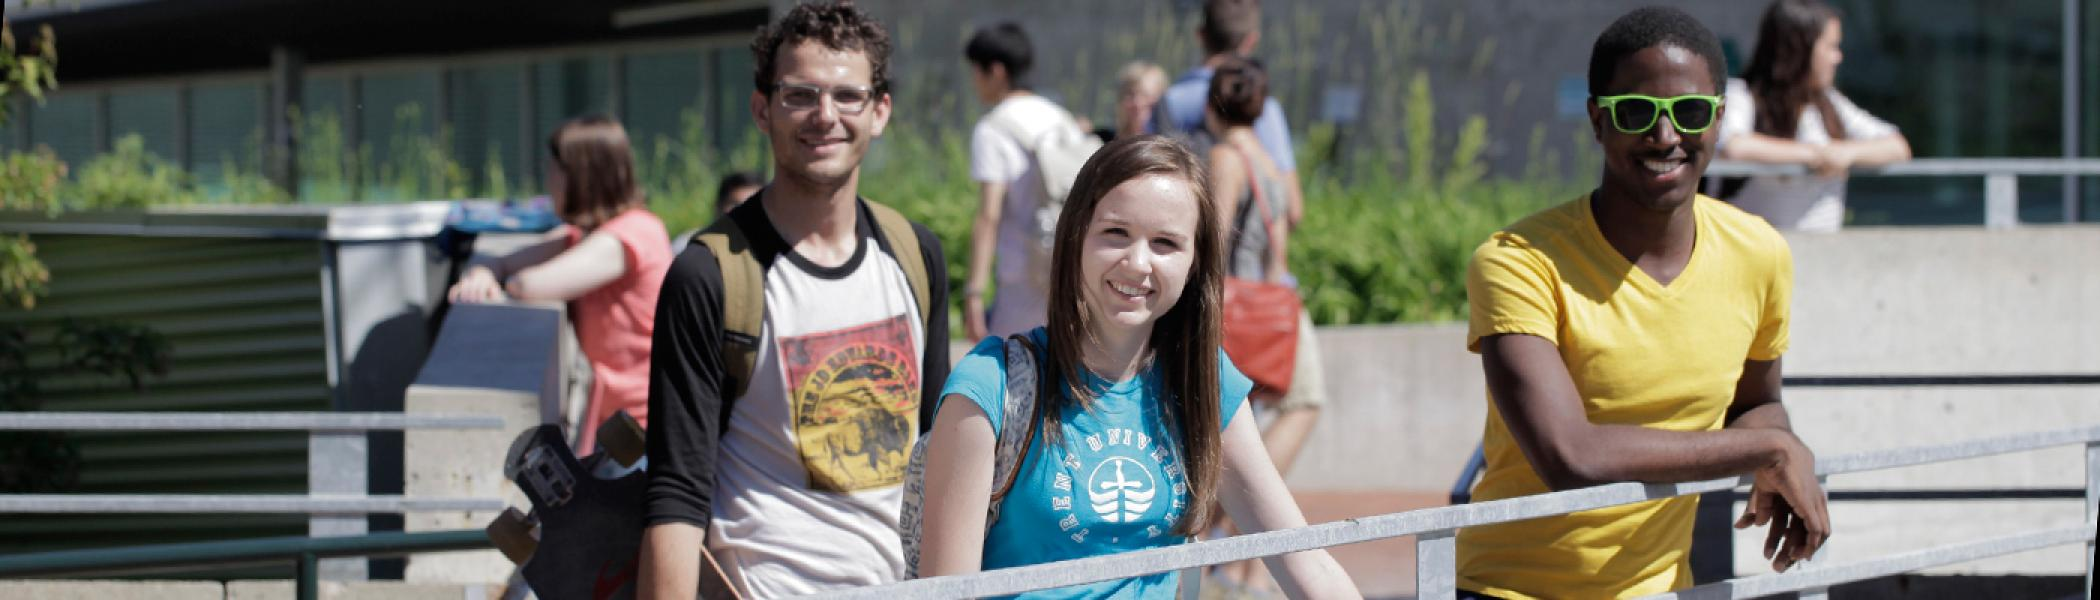 Students standing at the railing of faryon bridge near gzowski college in the early afternnon